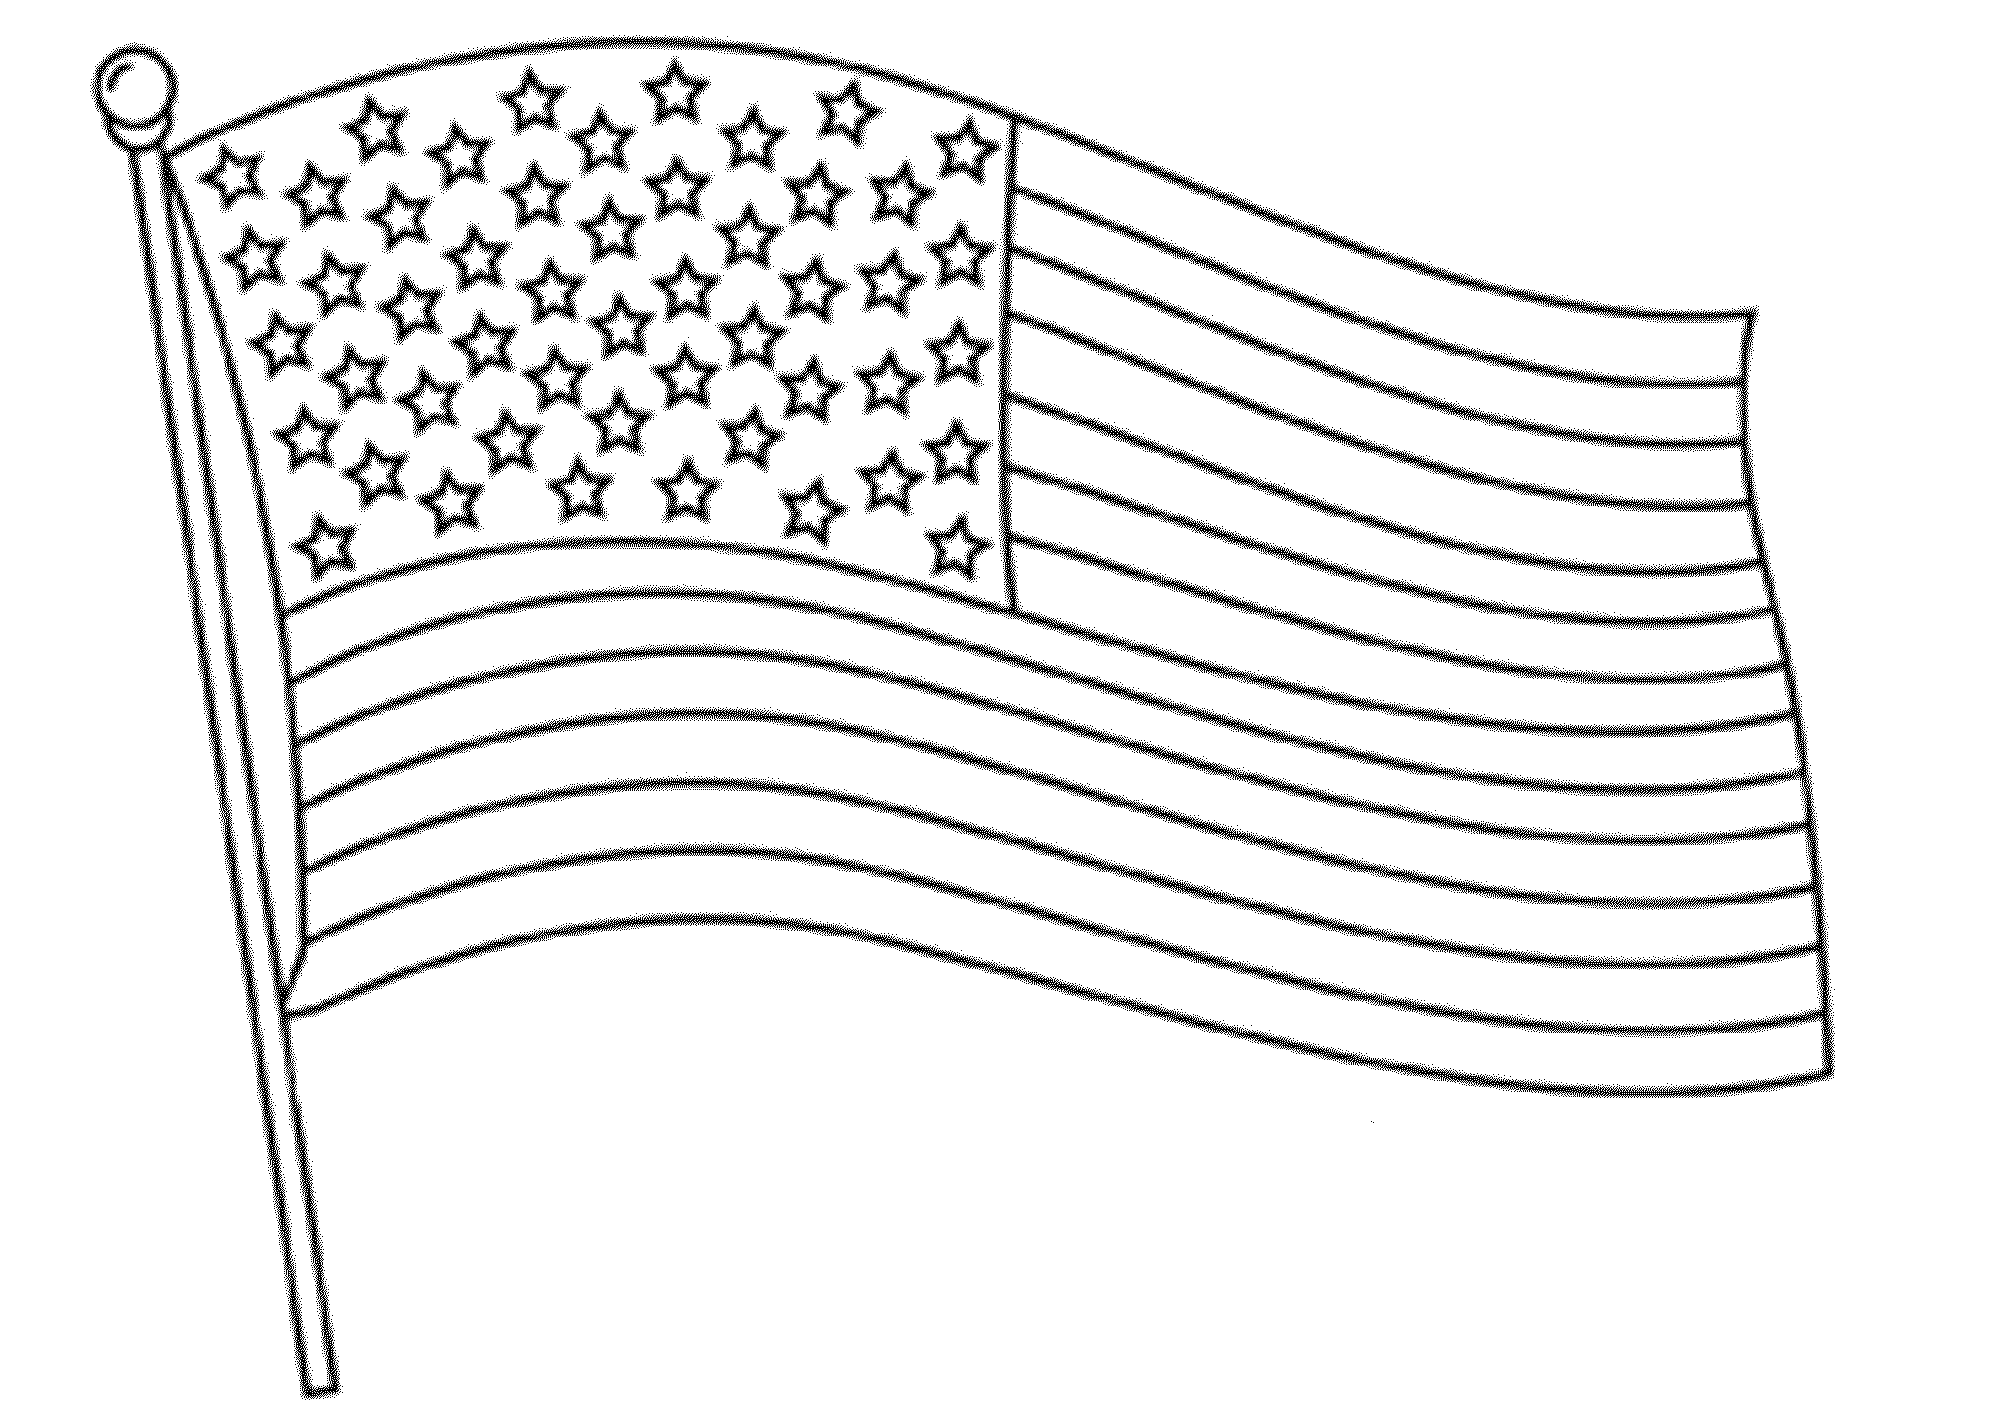 american flag coloring american flag coloring pages to download and print for free flag american coloring